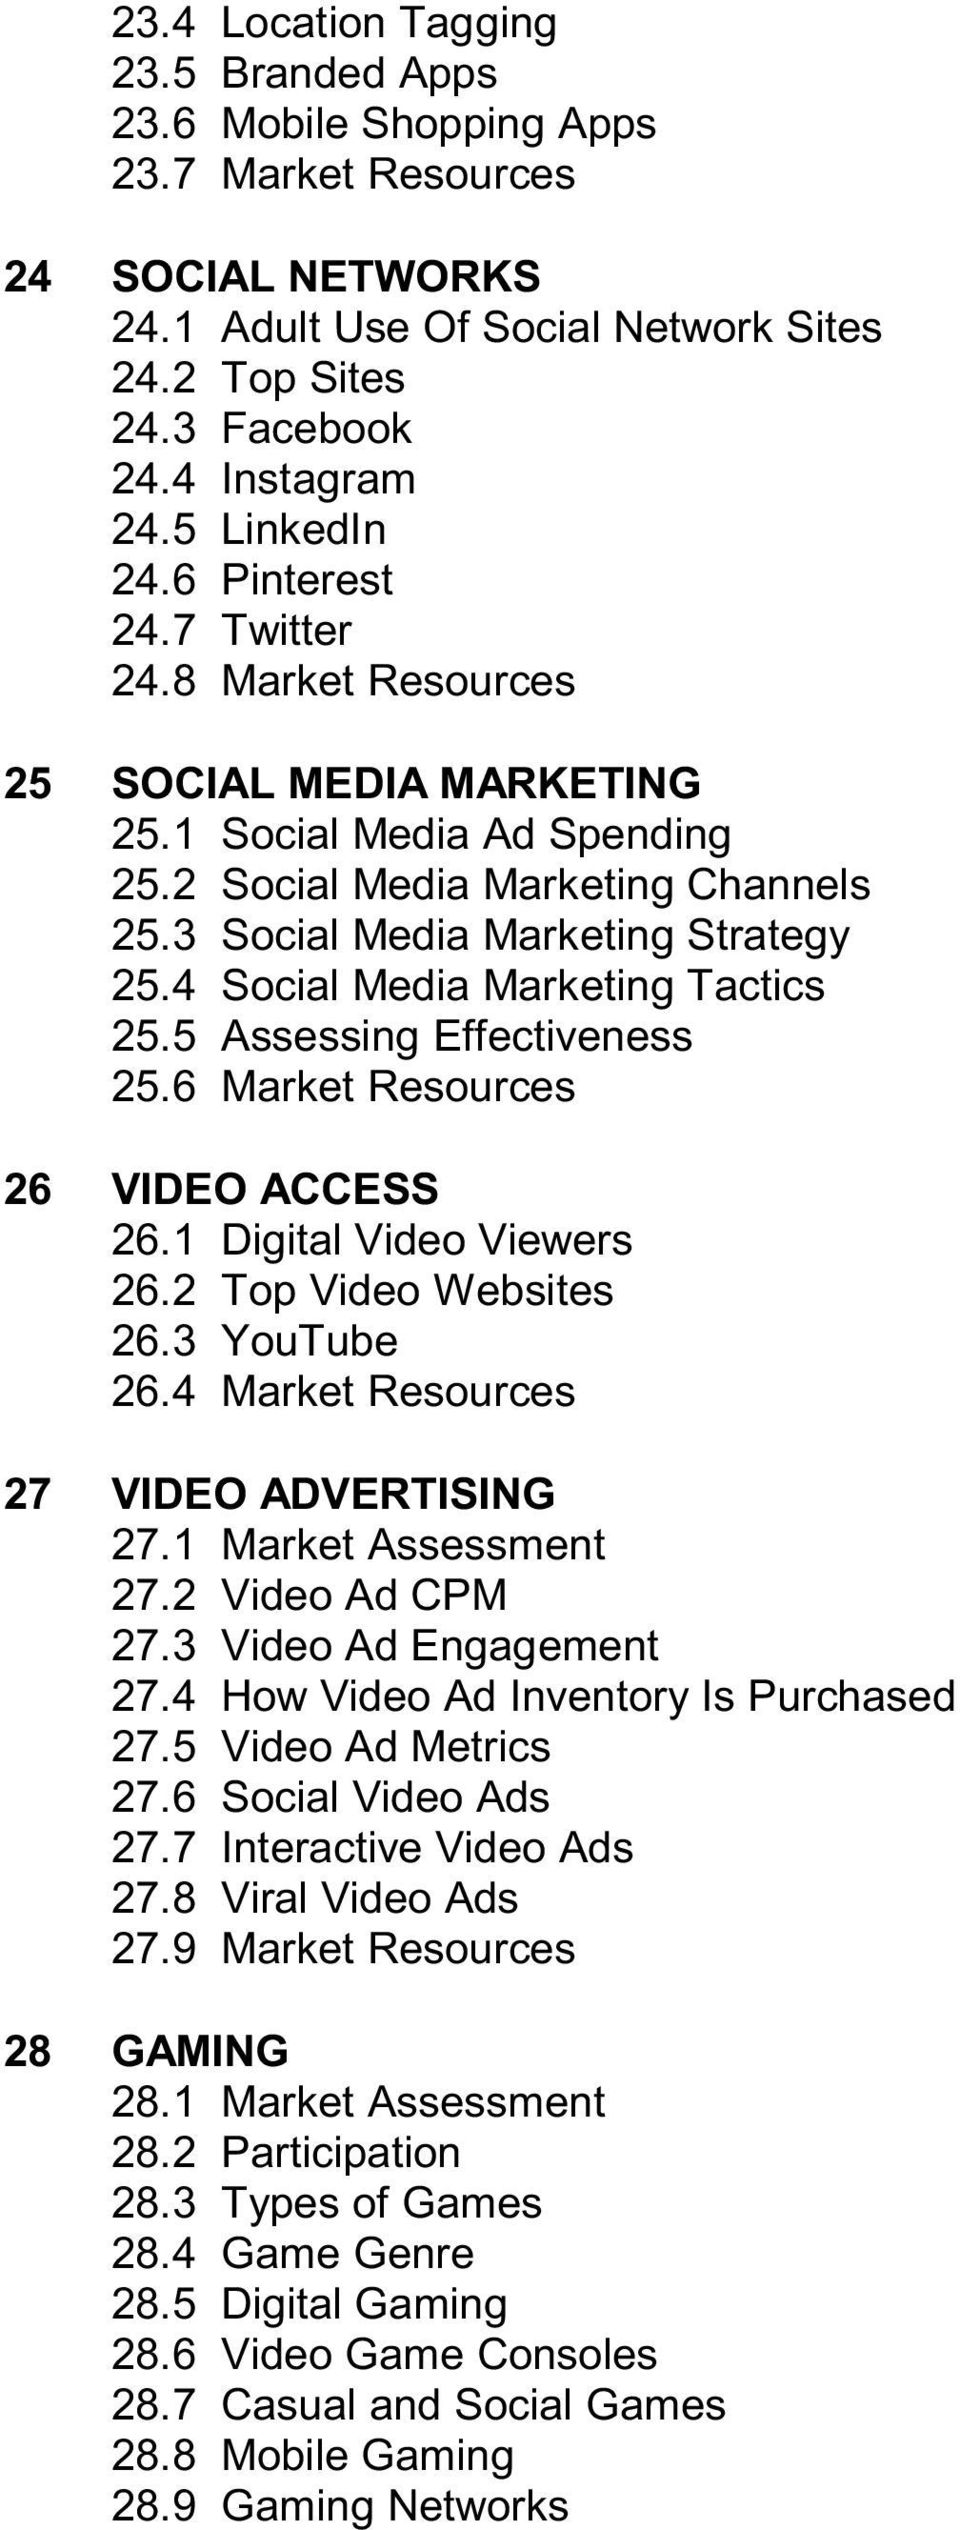 4 Social Media Marketing Tactics 25.5 Assessing Effectiveness 25.6 Market Resources 26 VIDEO ACCESS 26.1 Digital Video Viewers 26.2 Top Video Websites 26.3 YouTube 26.